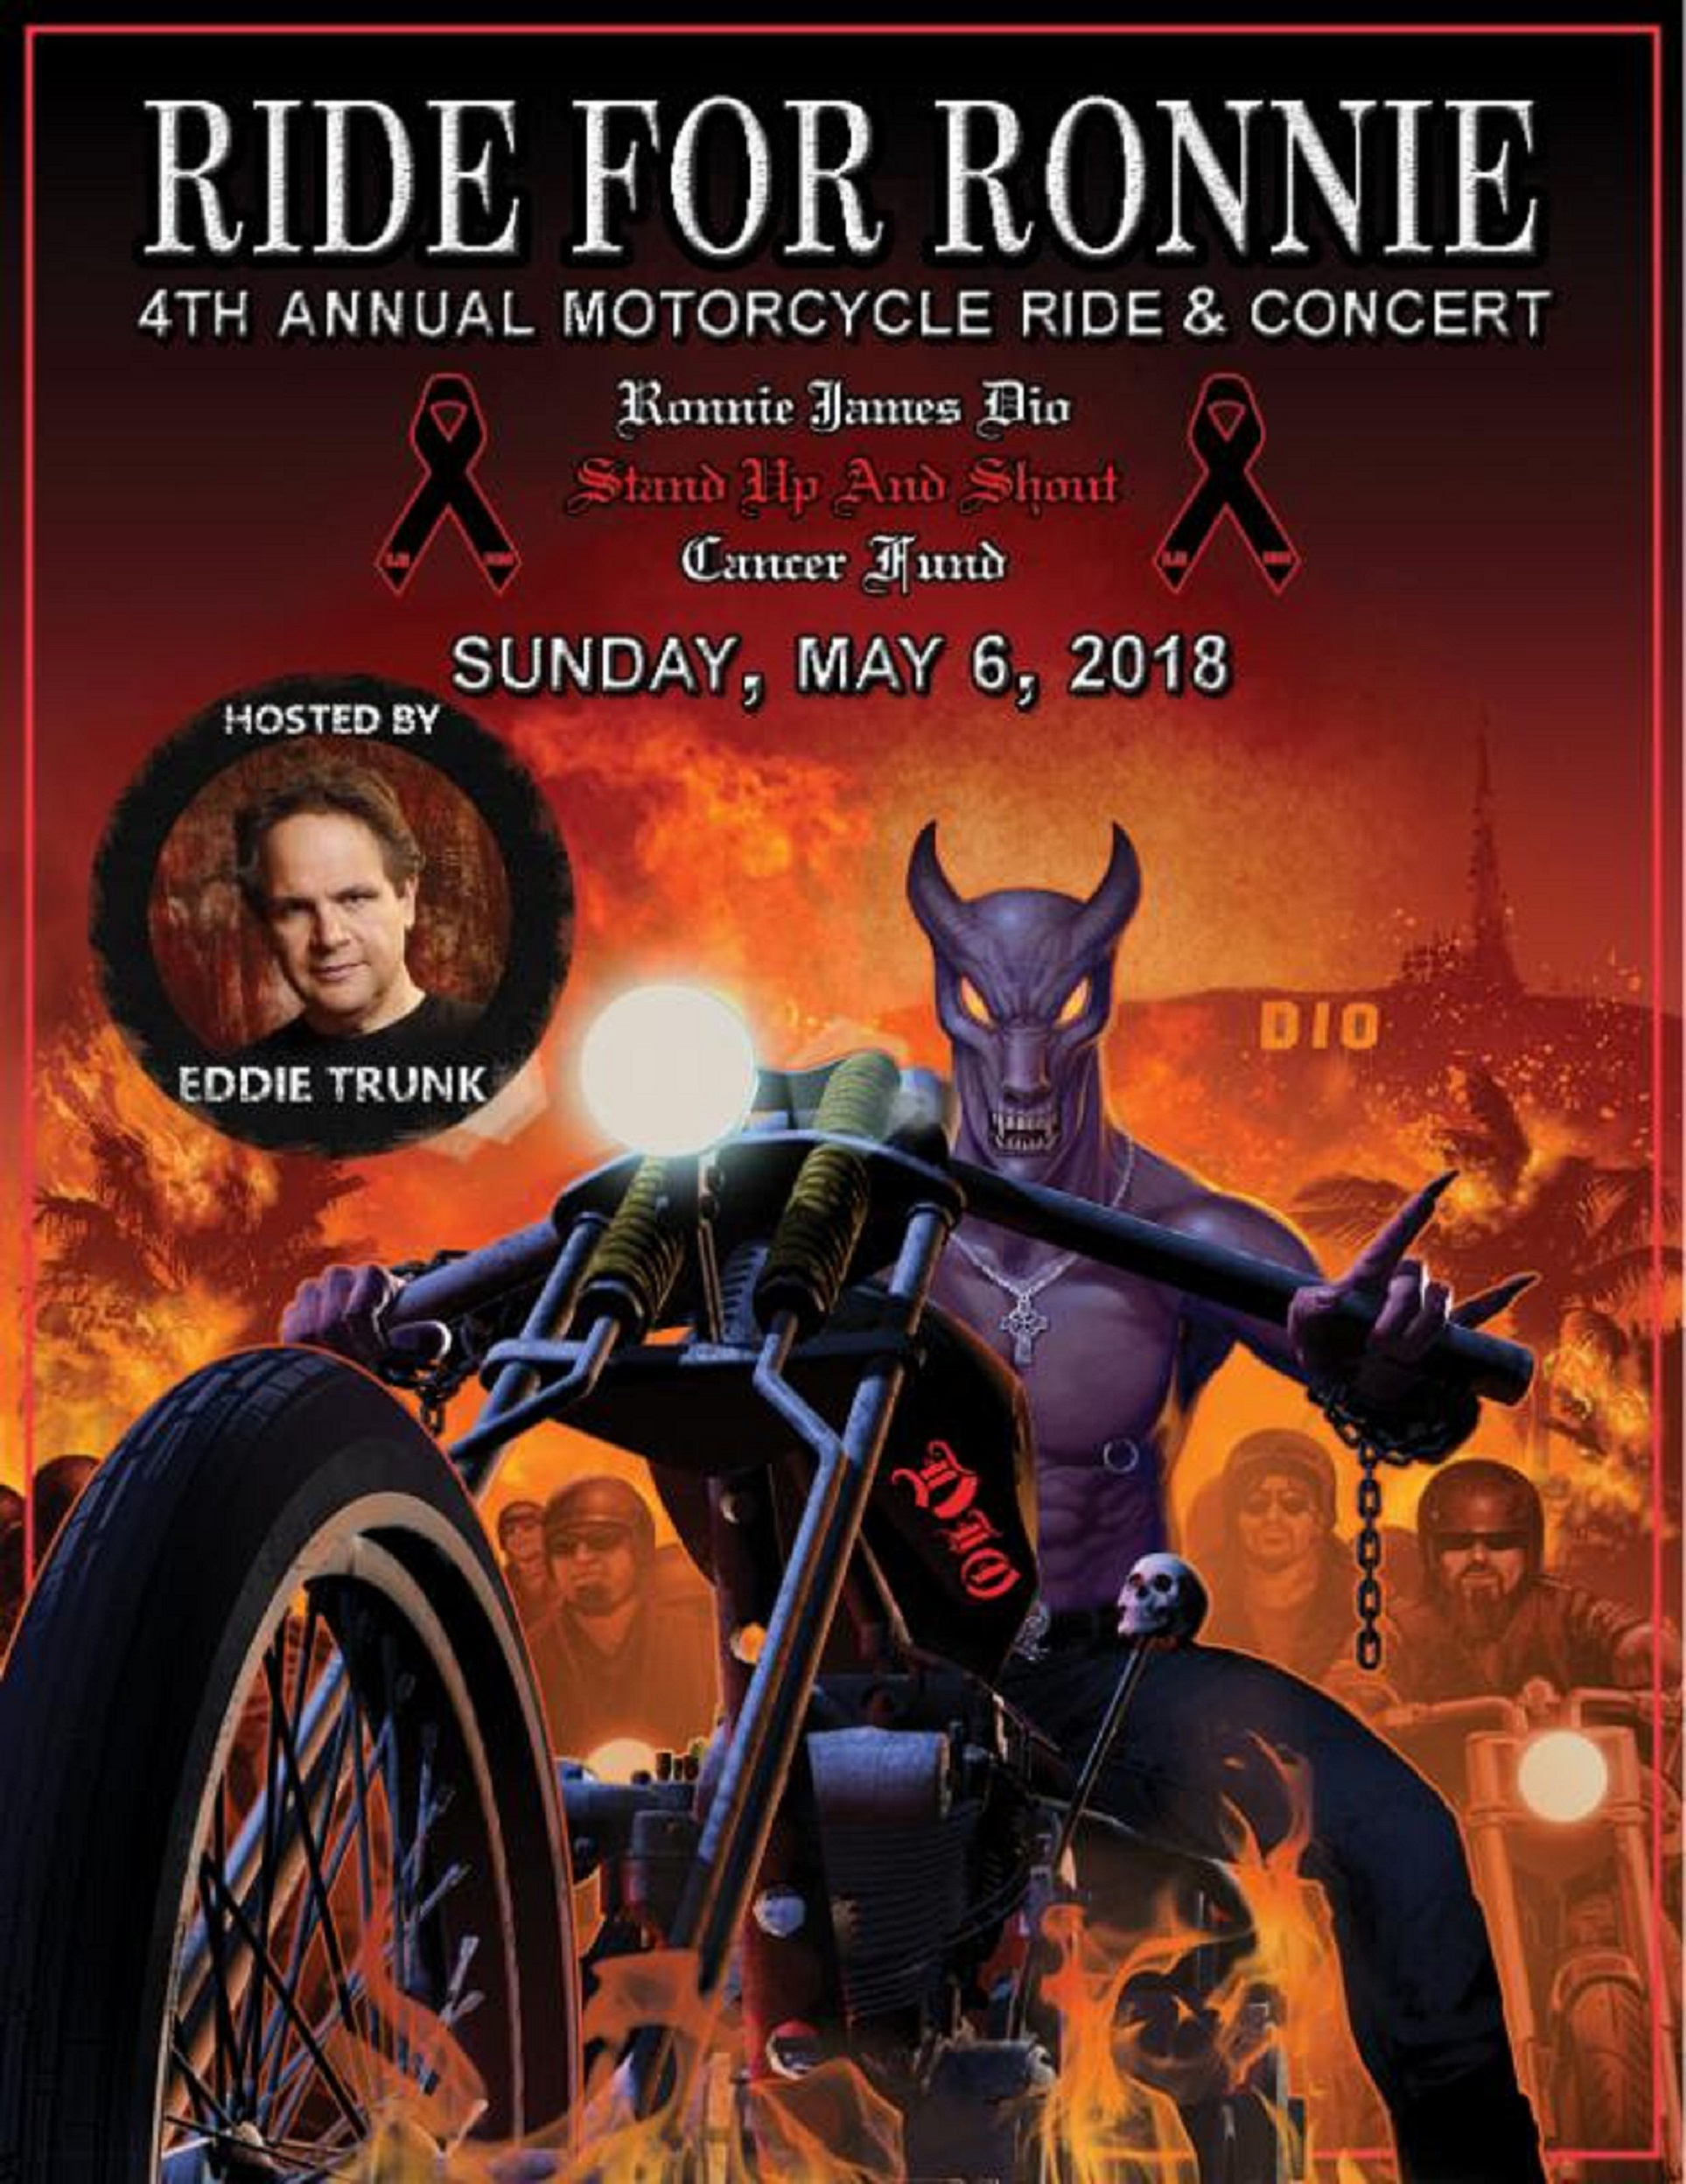 The 4th Annual RIDE FOR RONNIE Motorcycle Ride & Concert